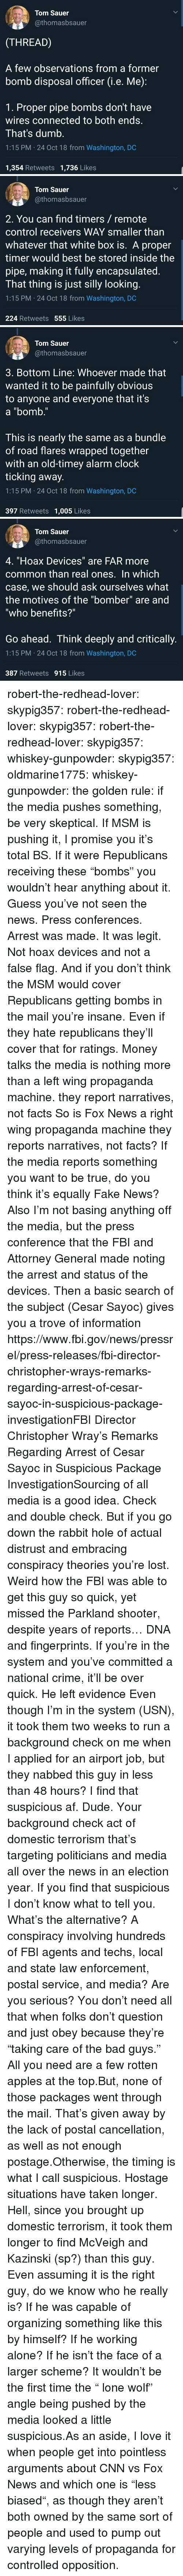 "Af, Being Alone, and Bad: Tom Sauer  @thomasbsauer  (THREAD)  A few observations from a former  bomb disposal officer G.e. Me)  1. Proper pipe bombs don't have  wires connected to both ends.  That's dumb.  1:15 PM 24 Oct 18 from Washington, DC  1,354 Retweets 1,736 Likes   Tom Sauer  @thomasbsauer  2. You can find timers/ remote  control receivers WAY smaller than  whatever that white box is. A proper  timer would best be stored inside the  pipe, making it fully encapsulated  I hat thing is just silly looking  1:15 PM 24 Oct 18 from Washington, DC  224 Retweets 555 Likes   Tom Sauer  @thomasbsauer  3. Bottom Line: Whoever made that  wanted it to be painfully obvious  to anyone and everyone that it's  a ""bomb.""  This is nearly the same as a bundle  of road flares wrapped together  with an old-timey alarm clock  ticking away.  1:15 PM 24 Oct 18 from Washington, DC  397 Retweets 1,005 Likes   Tom Sauer  @thomasbsauer  4, ""Hoax Devices"" are FAR more  common than real ones. In which  case, we should ask ourselves what  the motives of the ""bomber"" are and  ""who benefits?""  Go ahead. Think deeply and critically.  1:15 PM 24 Oct 18 from Washington, DC  387 Retweets 915 Likes robert-the-redhead-lover:  skypig357:  robert-the-redhead-lover:  skypig357:  robert-the-redhead-lover:  skypig357:  whiskey-gunpowder:  skypig357:  oldmarine1775:  whiskey-gunpowder: the golden rule: if the media pushes something, be very skeptical. If MSM is pushing it, I promise you it's total BS. If it were Republicans receiving these ""bombs"" you wouldn't hear anything about it.   Guess you've not seen the news. Press conferences. Arrest was made. It was legit. Not hoax devices and not a false flag. And if you don't think the MSM would cover Republicans getting bombs in the mail you're insane. Even if they hate republicans they'll cover that for ratings. Money talks   the media is nothing more than a left wing propaganda machine. they report narratives, not facts  So is Fox News a right wing propaganda machine they reports narratives, not facts? If the media reports something you want to be true, do you think it's equally Fake News? Also I'm not basing anything off the media, but the press conference that the FBI and Attorney General made noting the arrest and status of the devices. Then a basic search of the subject (Cesar Sayoc) gives you a trove of information https://www.fbi.gov/news/pressrel/press-releases/fbi-director-christopher-wrays-remarks-regarding-arrest-of-cesar-sayoc-in-suspicious-package-investigationFBI Director Christopher Wray's Remarks Regarding Arrest of Cesar Sayoc in Suspicious Package InvestigationSourcing of all media is a good idea. Check and double check. But if you go down the rabbit hole of actual distrust and embracing conspiracy theories you're lost.   Weird how the FBI was able to get this guy so quick, yet missed the Parkland shooter, despite years of reports…  DNA and fingerprints. If you're in the system and you've committed a national crime, it'll be over quick. He left evidence   Even though I'm in the system (USN), it took them two weeks to run a background check on me when I applied for an airport job, but they nabbed this guy in less than 48 hours? I find that suspicious af.  Dude. Your background check  act of domestic terrorism that's targeting politicians and media all over the news in an election year. If you find that suspicious I don't know what to tell you. What's the alternative? A conspiracy involving hundreds of FBI agents and techs, local and state law enforcement, postal service, and media? Are you serious?   You don't need all that when folks don't question and just obey because they're ""taking care of the bad guys."" All you need are a few rotten apples at the top.But, none of those packages went through the mail. That's given away by the lack of postal cancellation, as well as not enough postage.Otherwise, the timing is what I call suspicious. Hostage situations have taken longer. Hell, since you brought up domestic terrorism, it took them longer to find McVeigh and Kazinski (sp?) than this guy.  Even assuming it is the right guy, do we know who he really is? If he was capable of organizing something like this by himself? If he working alone? If he isn't the face of a larger scheme? It wouldn't be the first time the "" lone wolf"" angle being pushed by the media looked a little suspicious.As an aside, I love it when people get into pointless arguments about CNN vs Fox News and which one is ""less biased"", as though they aren't both owned by the same sort of people and used to pump out varying levels of propaganda for controlled opposition."